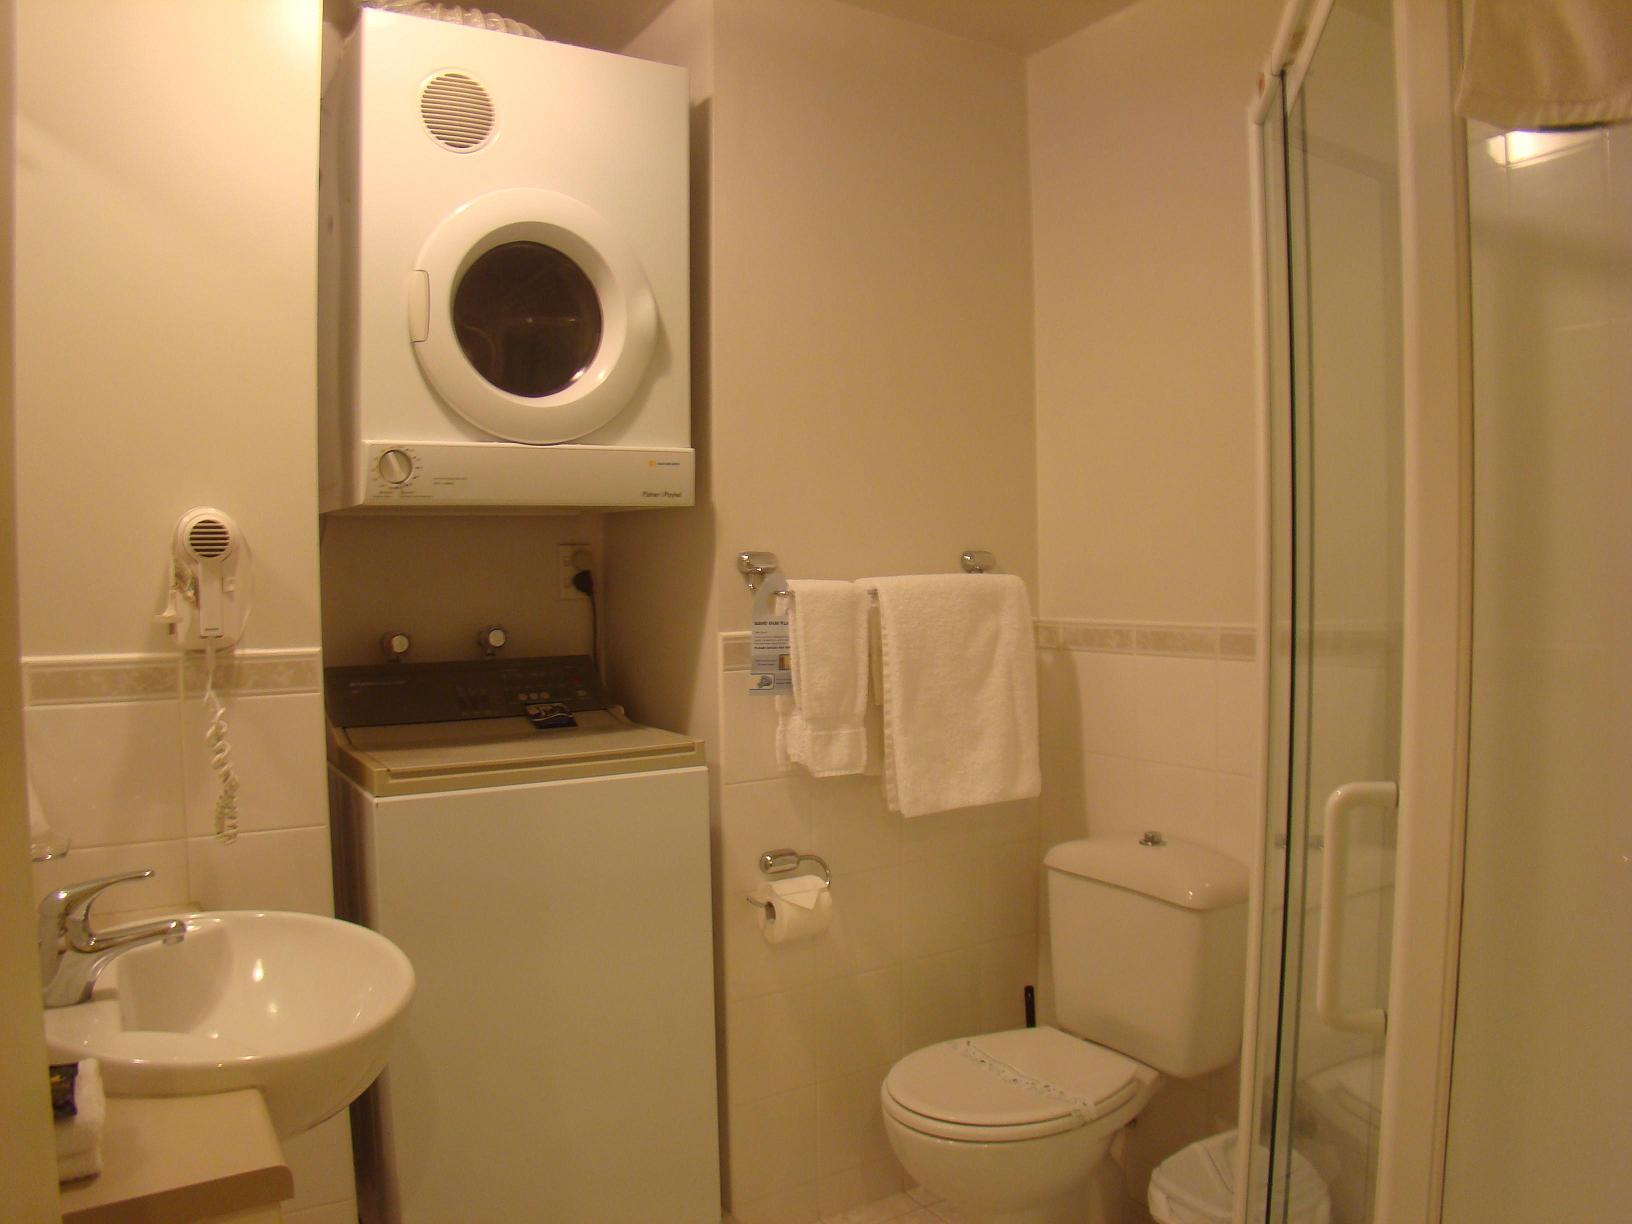 Bathroom Studio Apartment 0 Sq.m. Quest On Eden